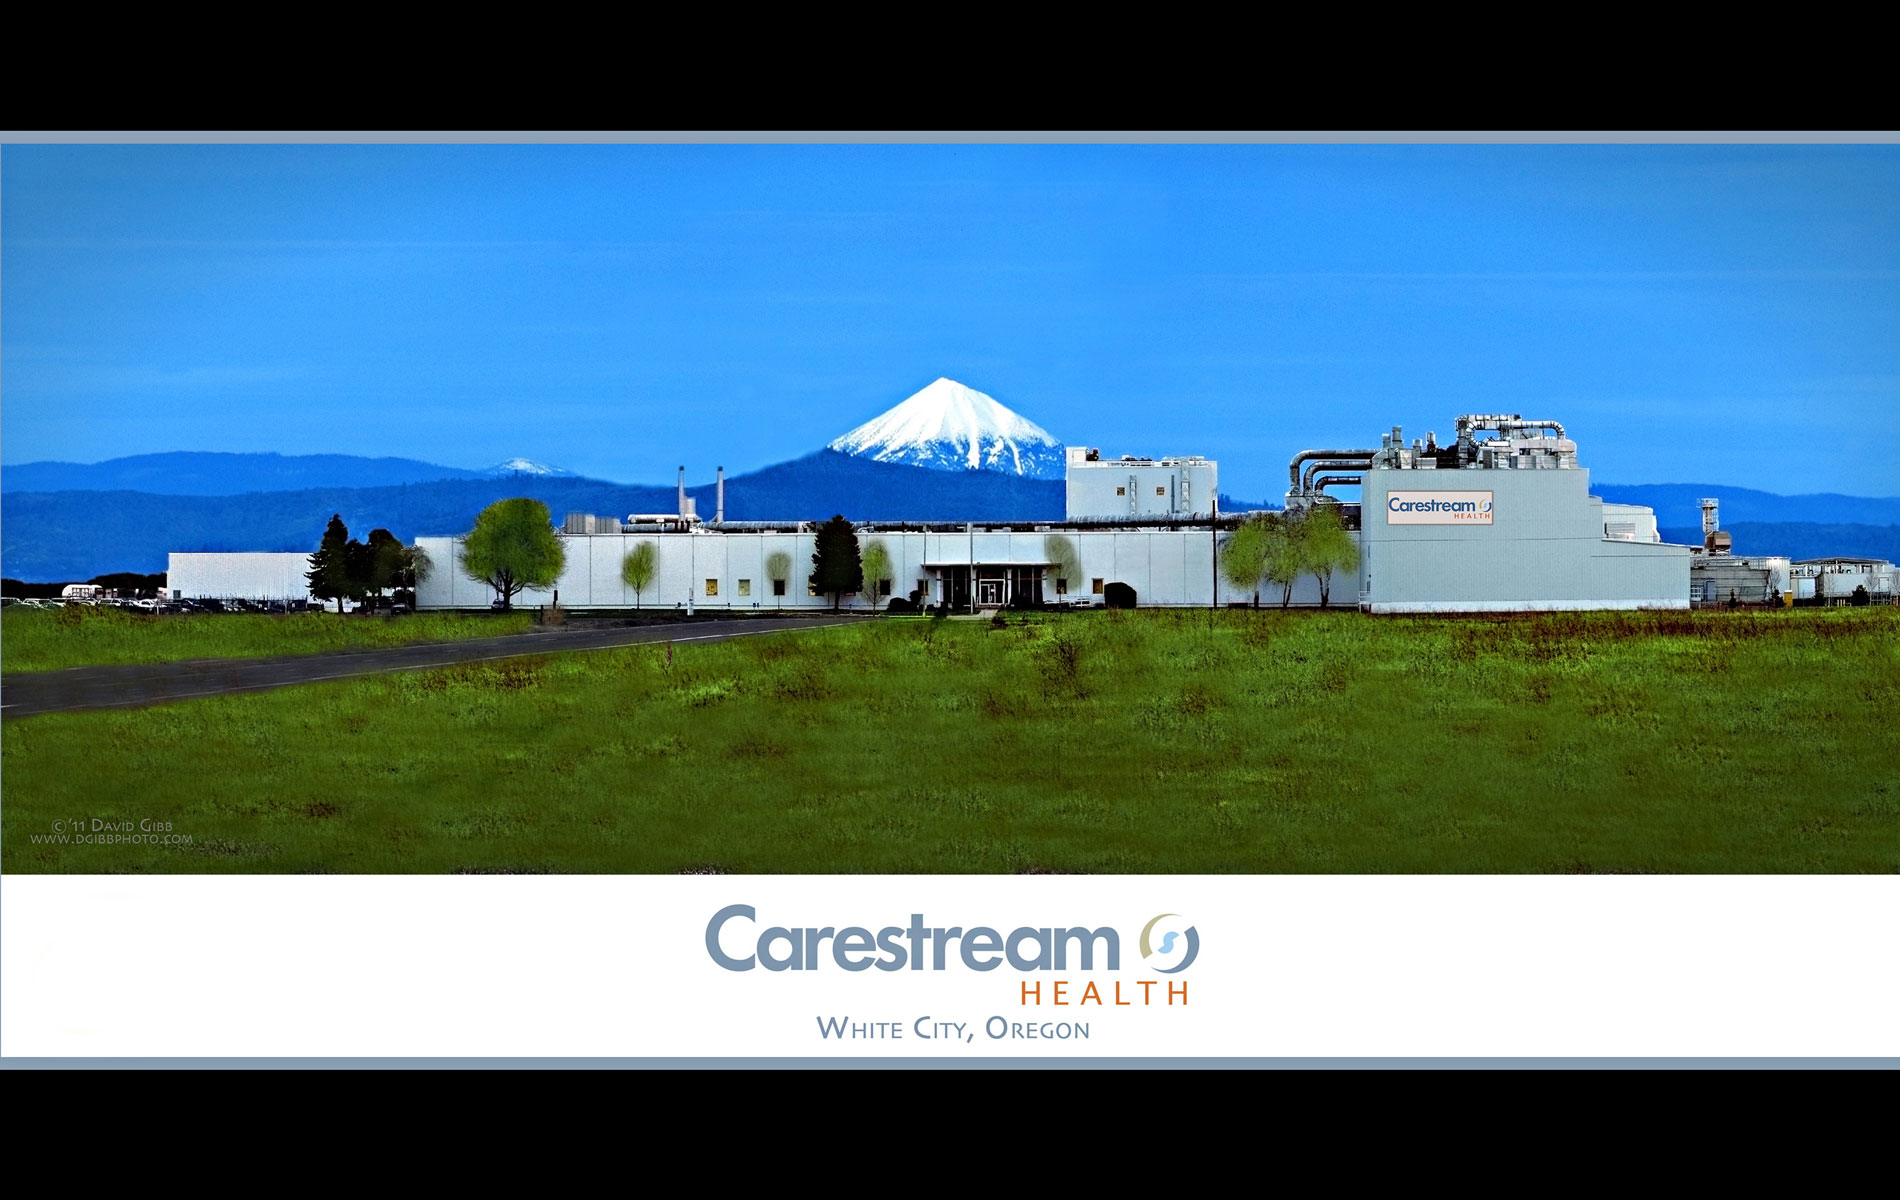 client: carestream